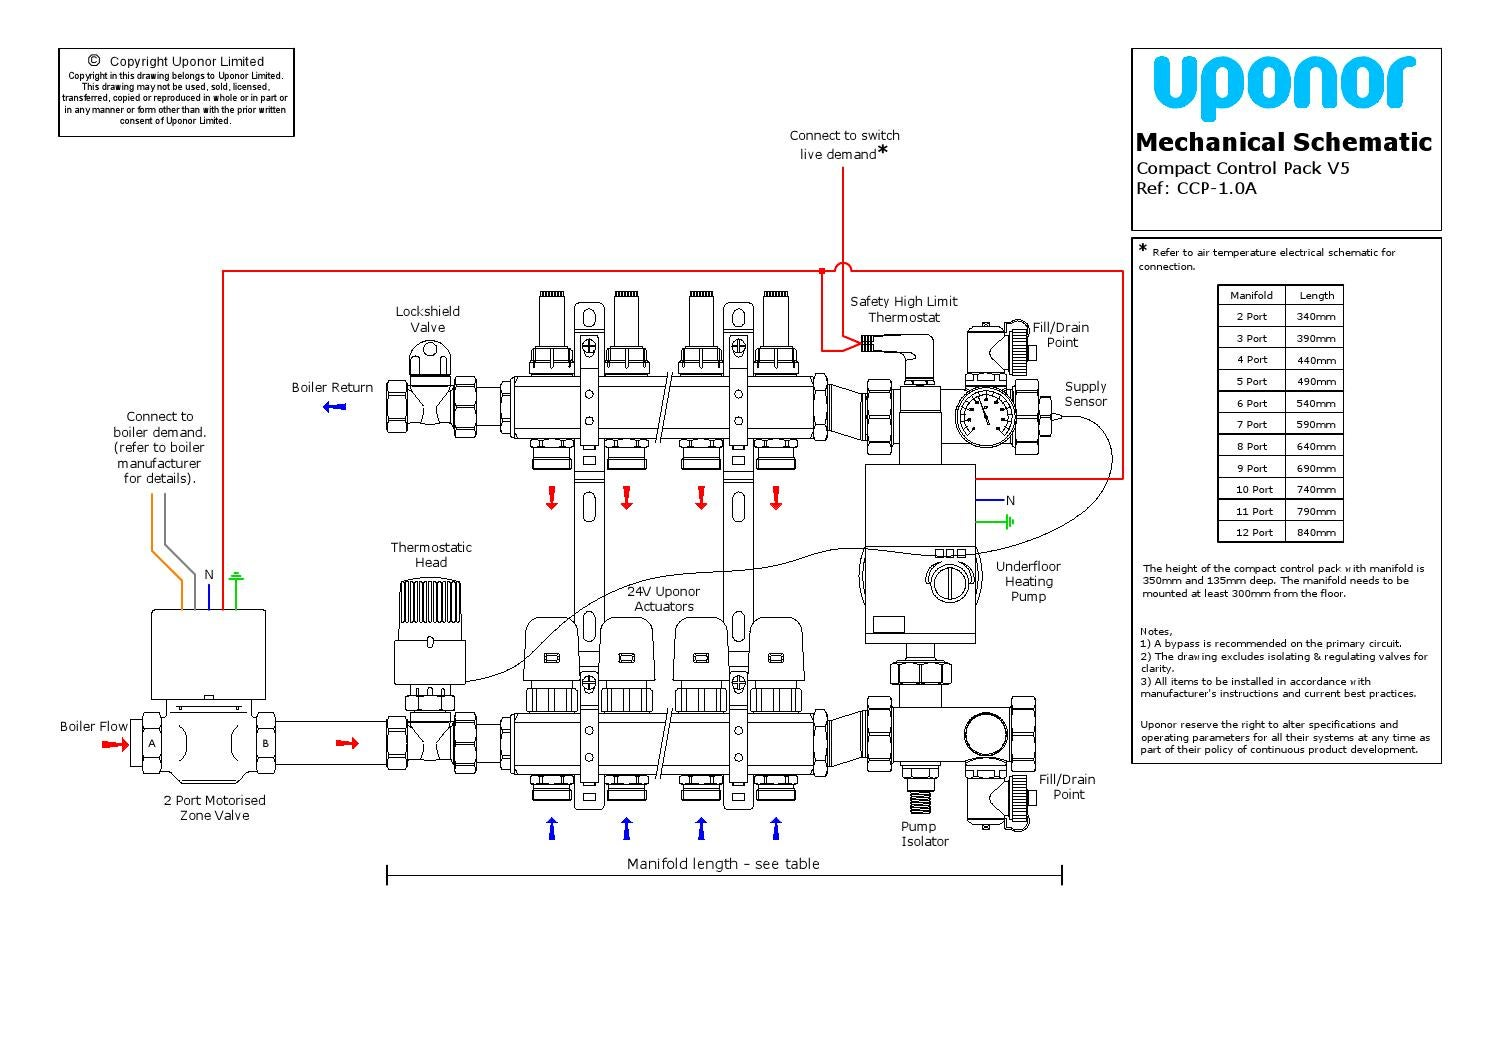 underfloor heating wiring diagrams 4 way round diagram compact control pack by uponor uk issuu